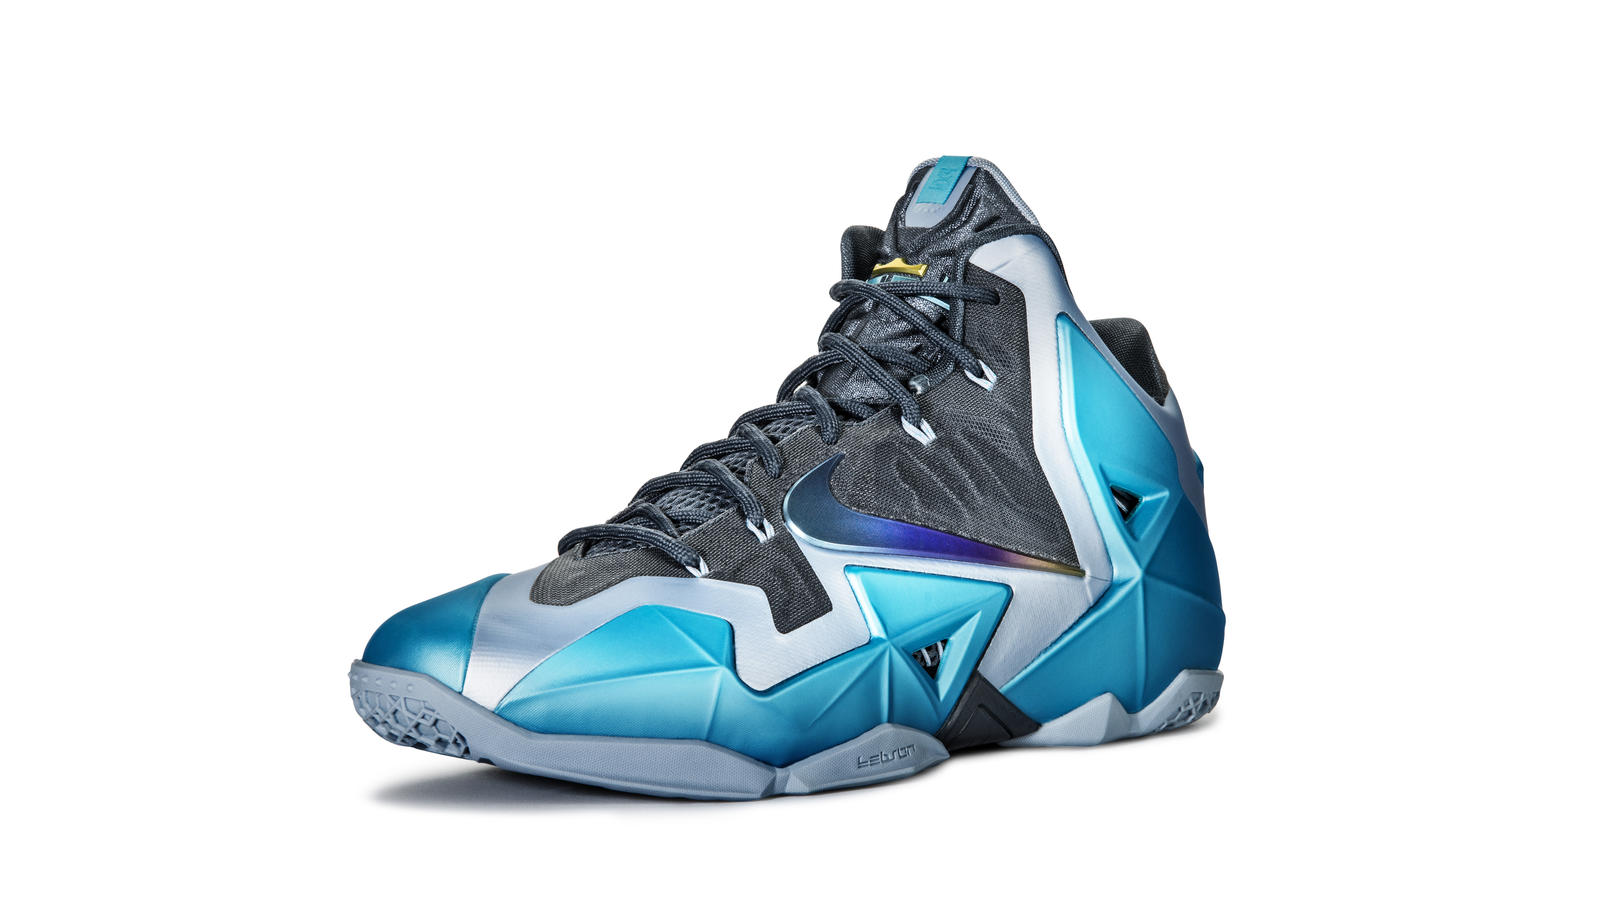 d7d44139 LEBRON 11 Gamma Blue: Heat Treated For Toughness - Nike News